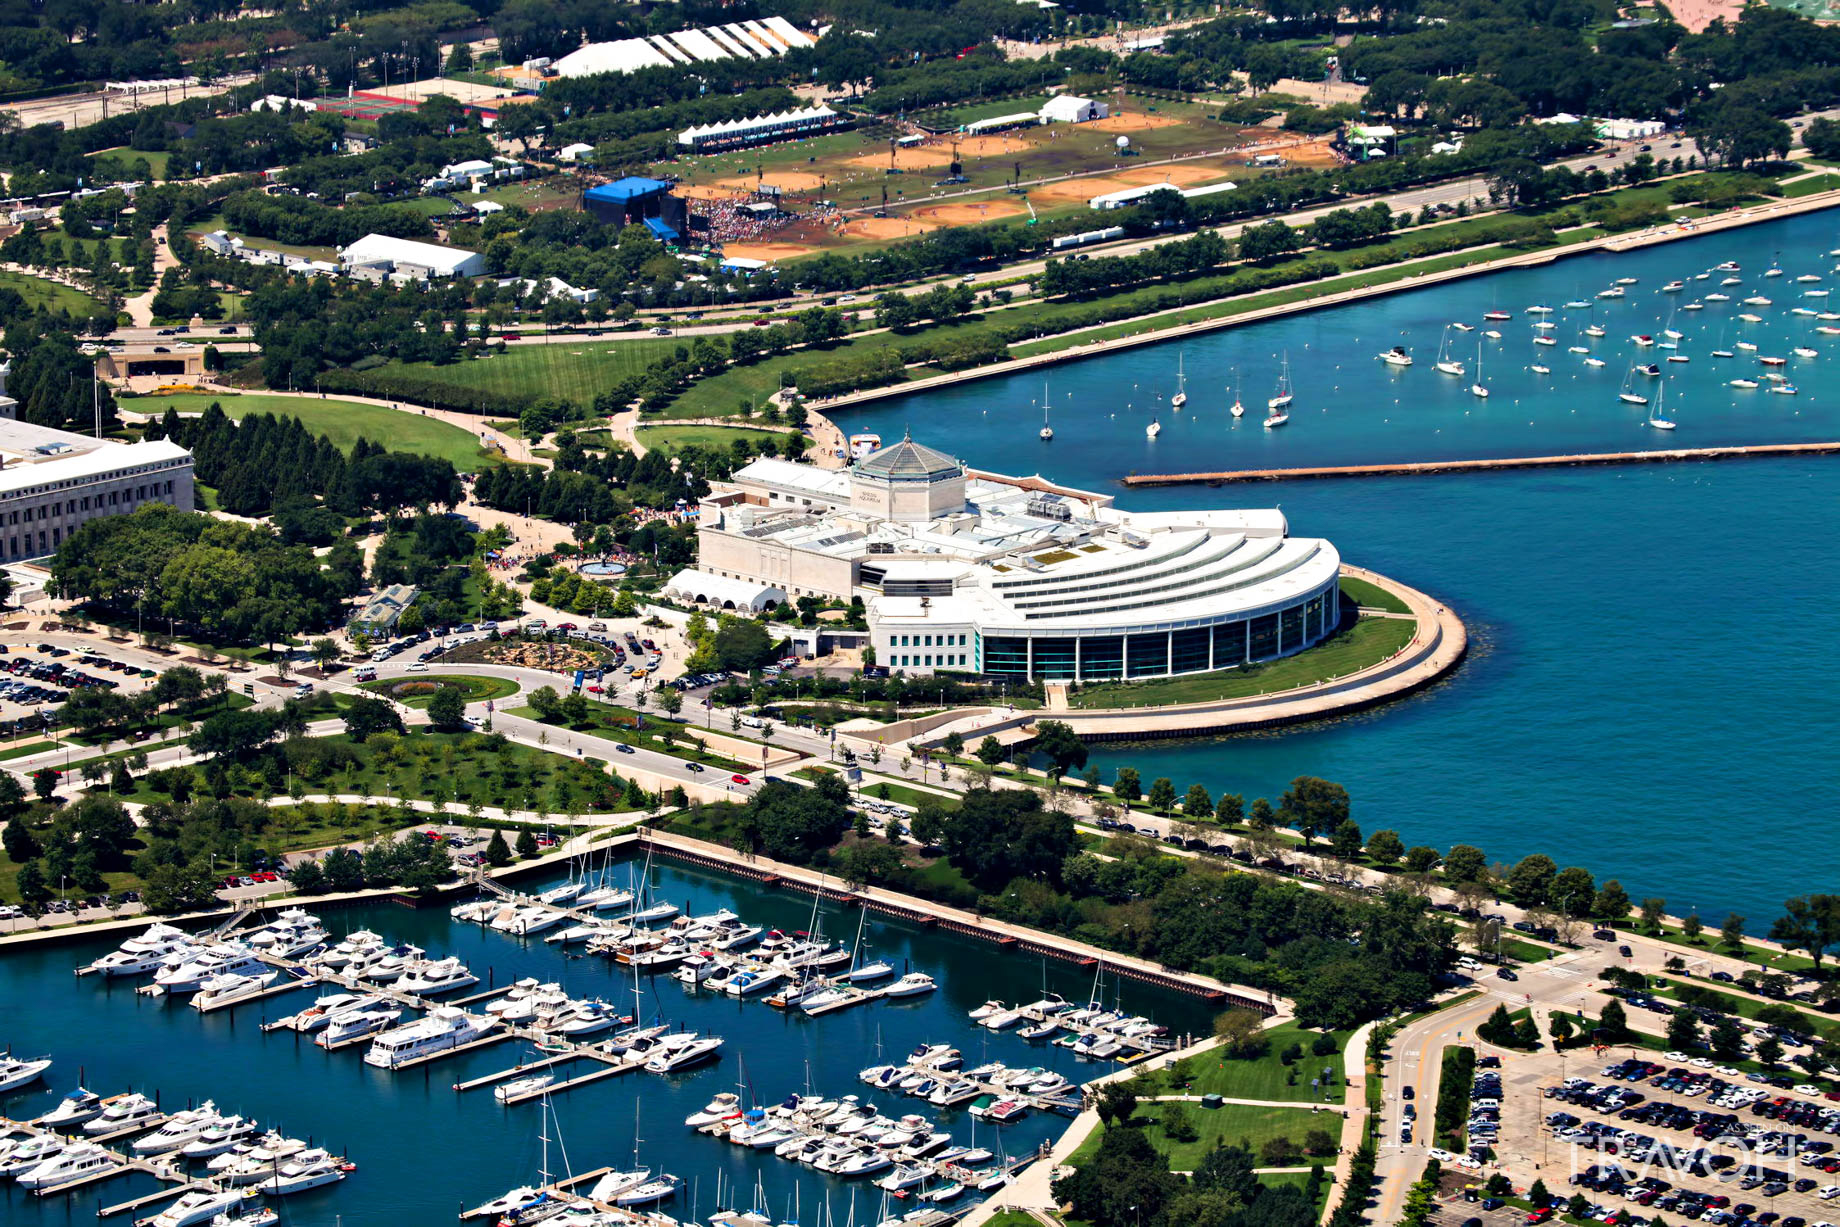 Visit the Shedd Aquarium - 1200 S Lake Shore Dr, Chicago, IL, USA